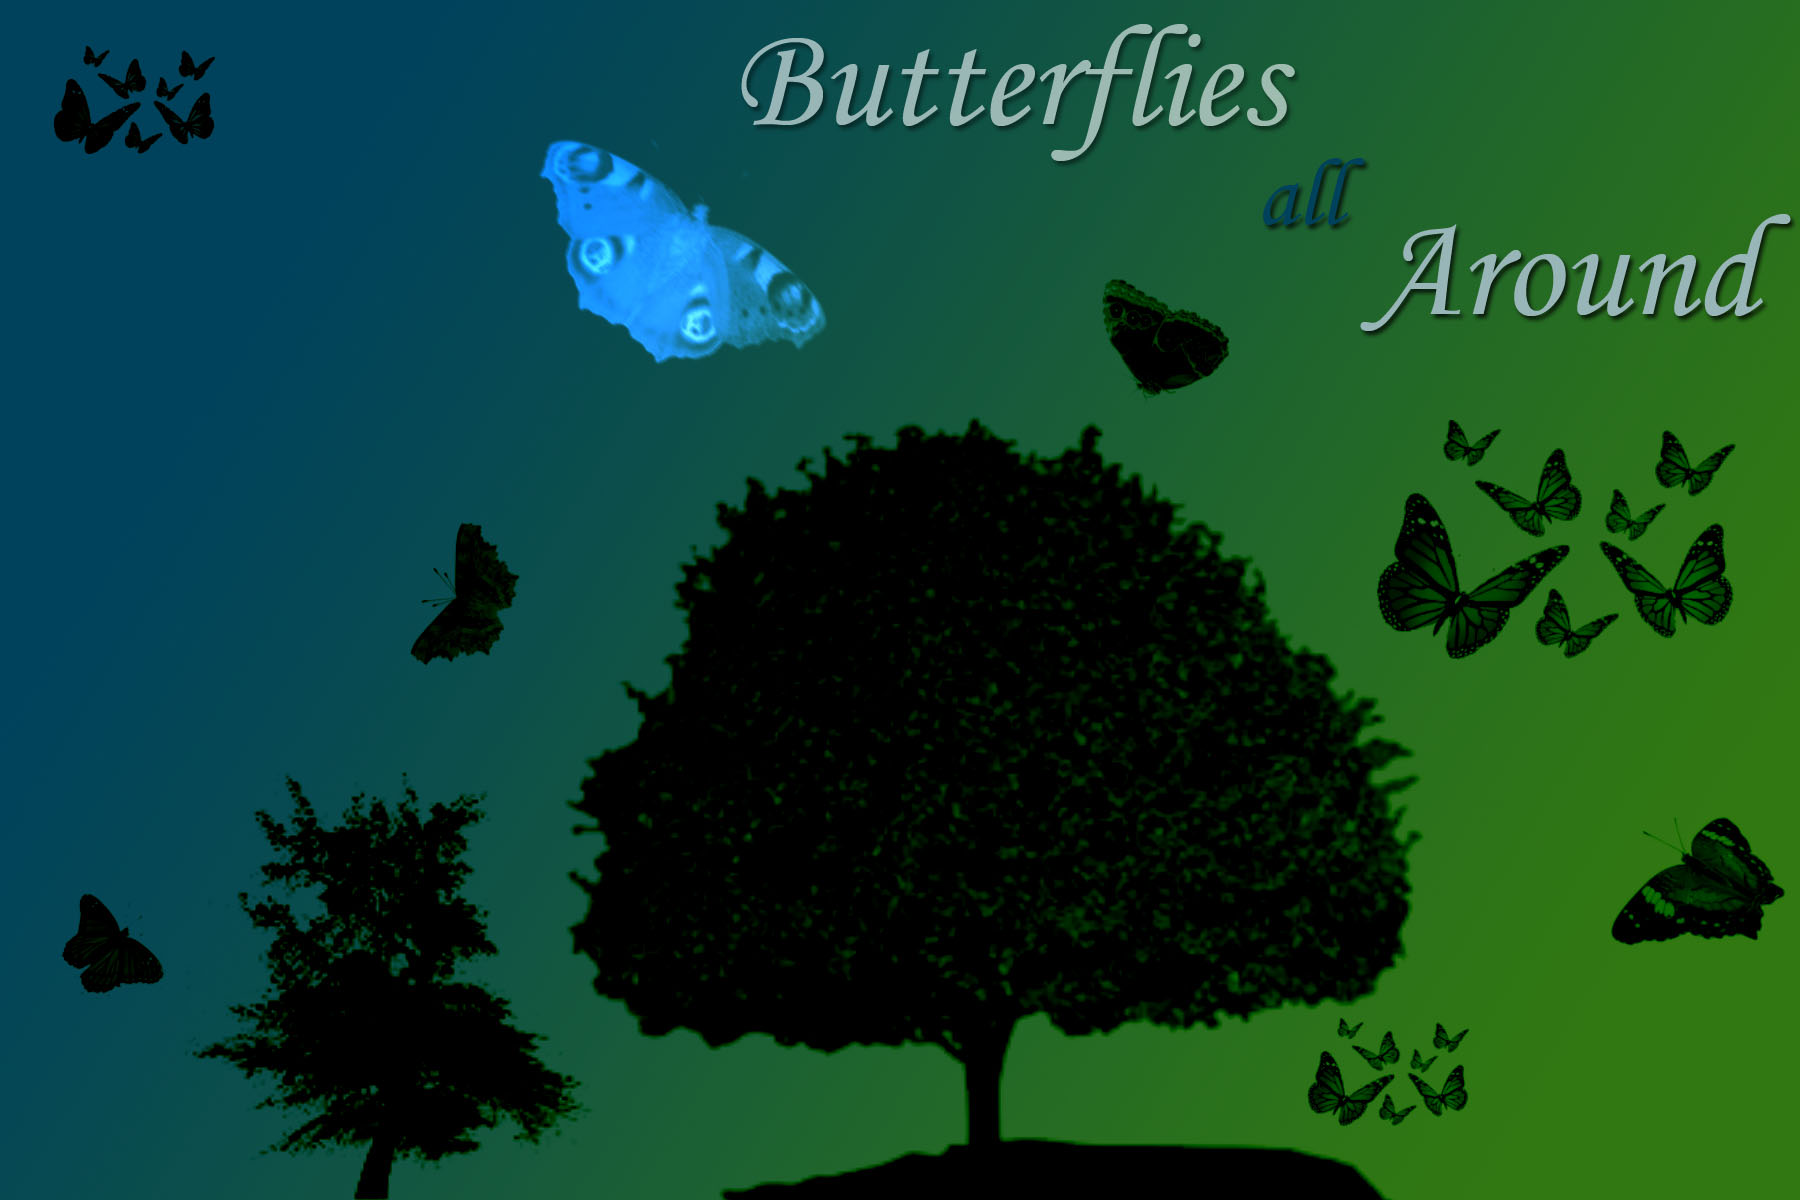 Butterflies All Around by Bickhamsarah